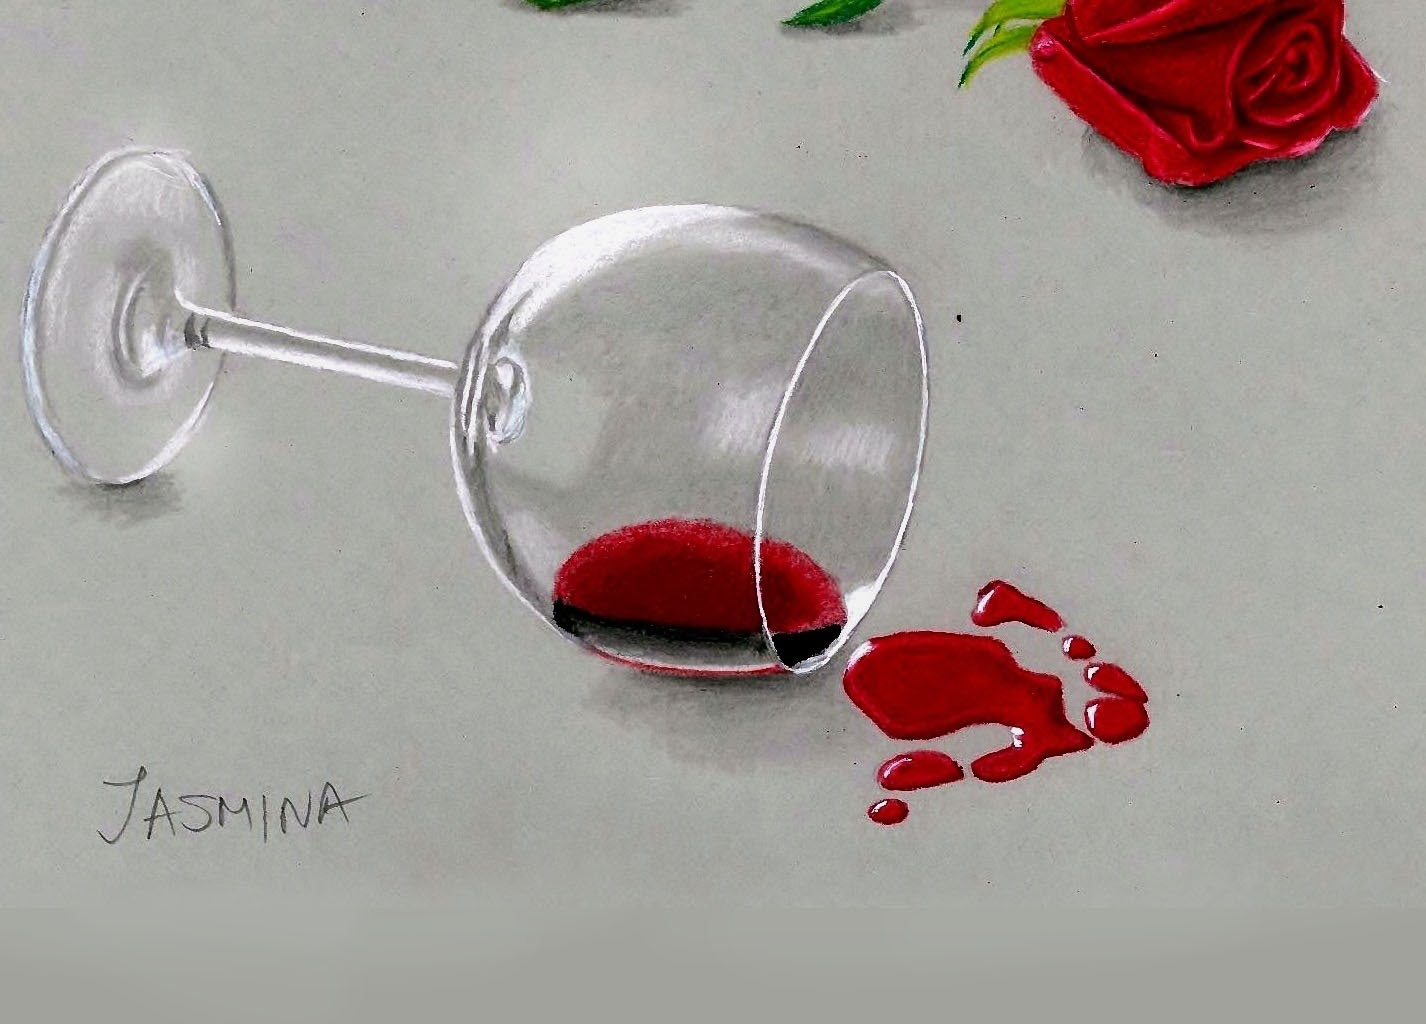 1426x1024 Speed Drawing Wine Glass And Red Rose In Colored Pencil Jasmina